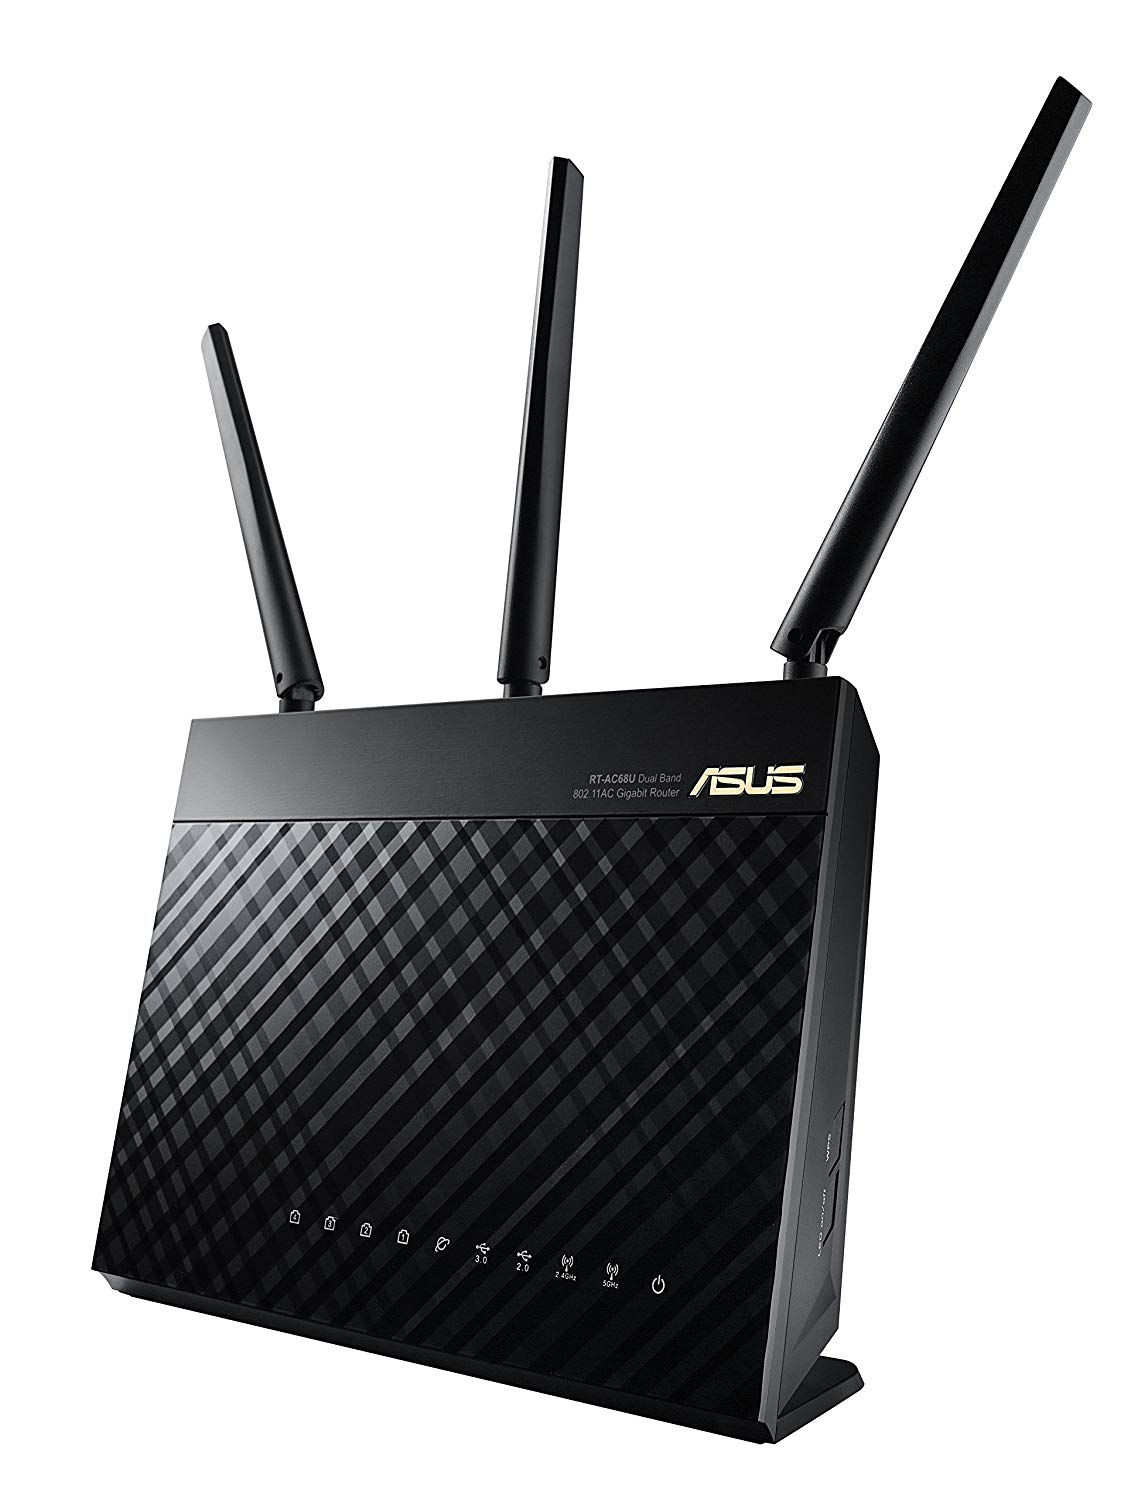 Medium End Internet Router (ASUS RT-AC68U)